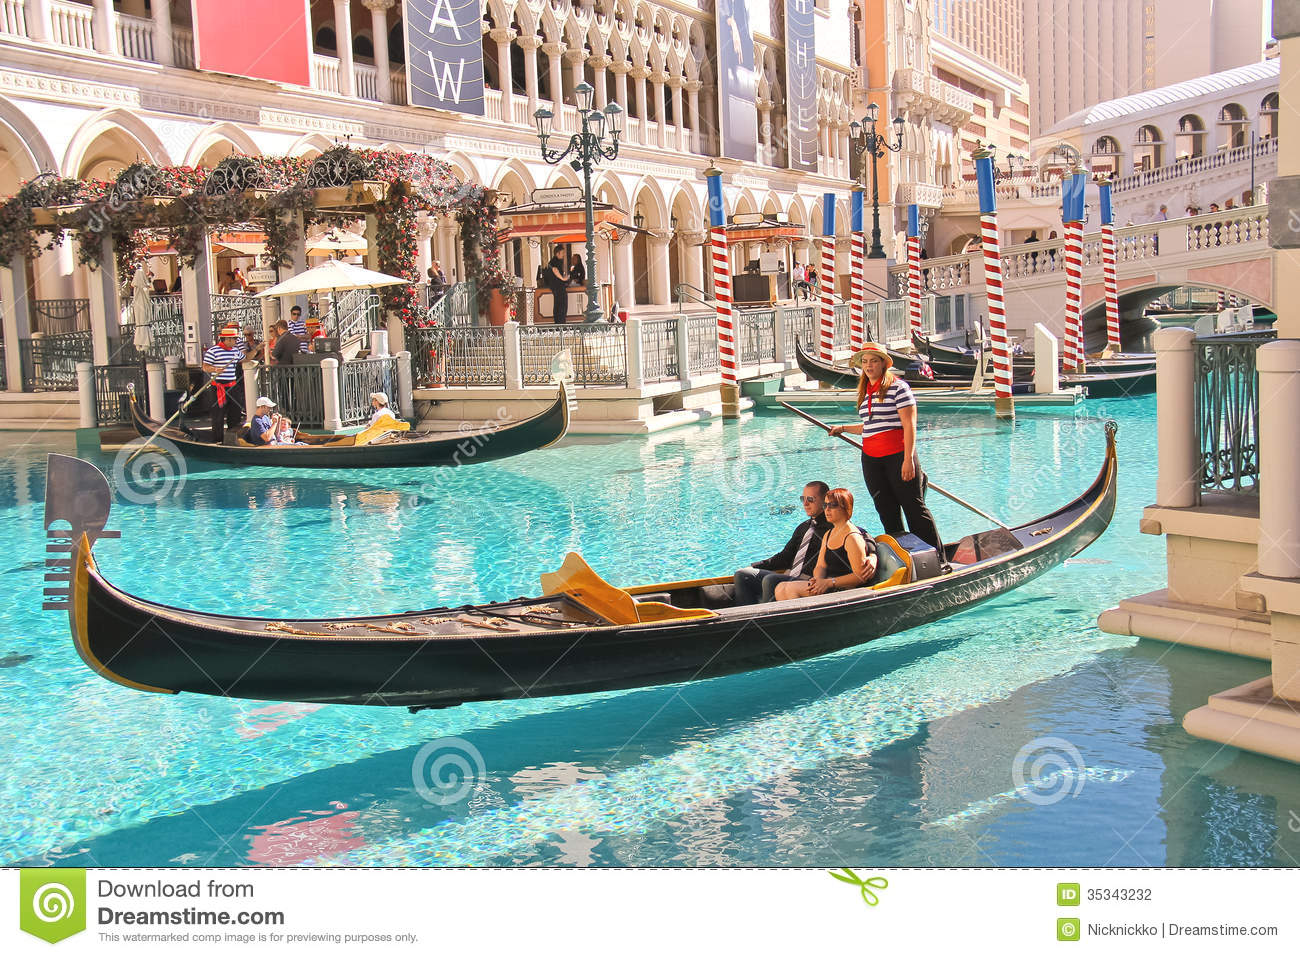 las vegas casino with gondola